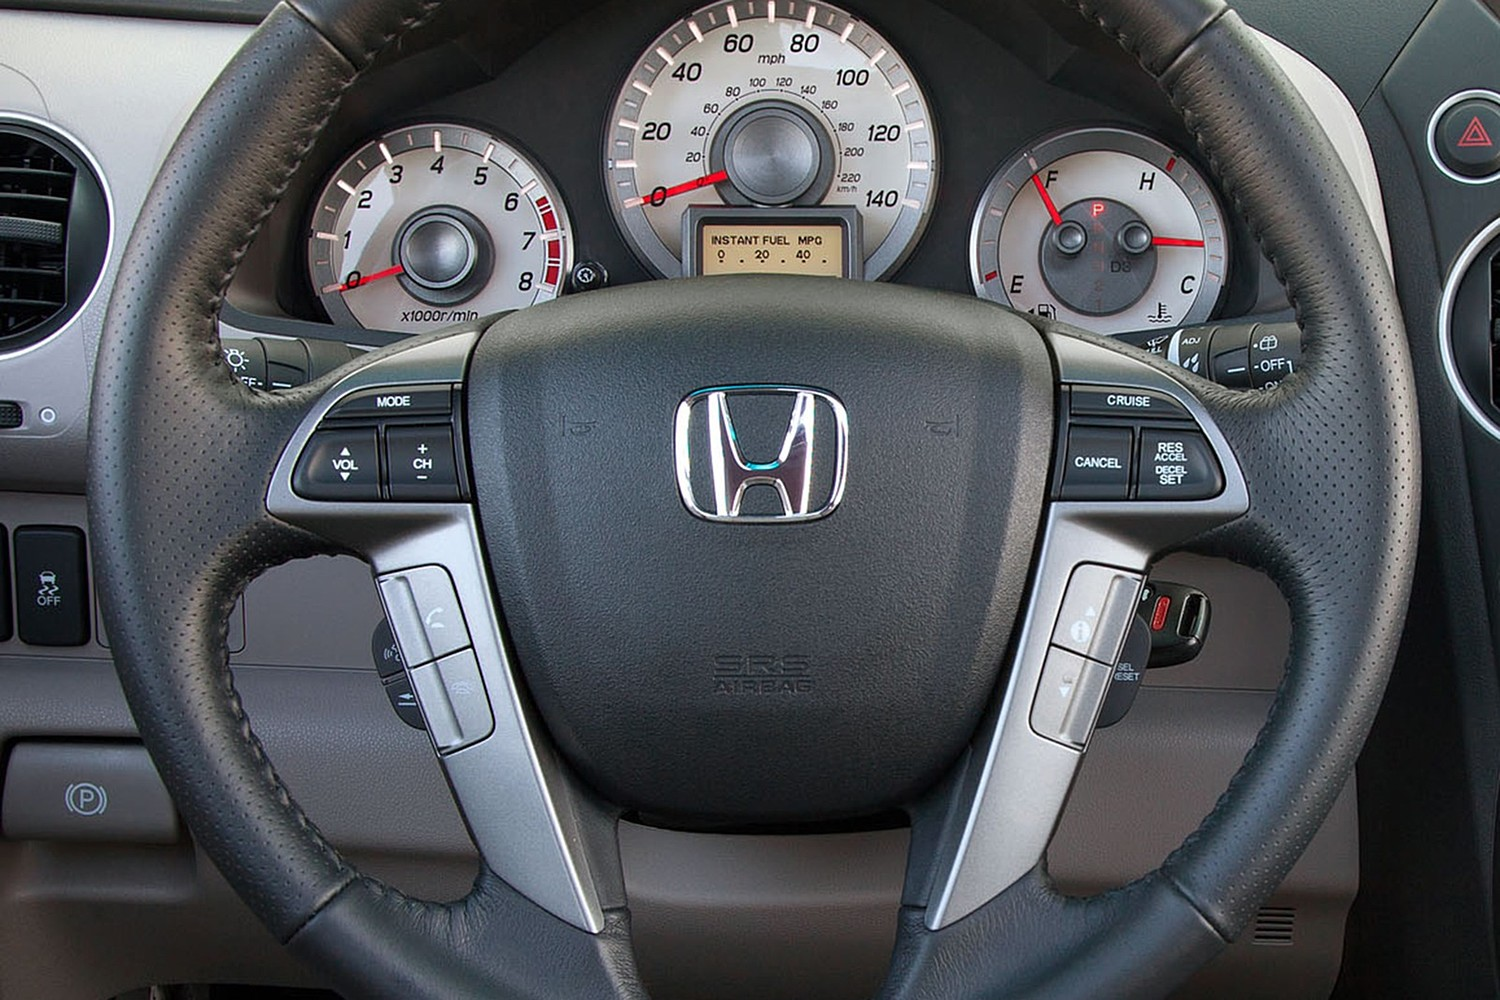 Honda Pilot Touring w/Navigation and Rear Entertainment 4dr SUV Steering Wheel Detail (2013 model year shown)